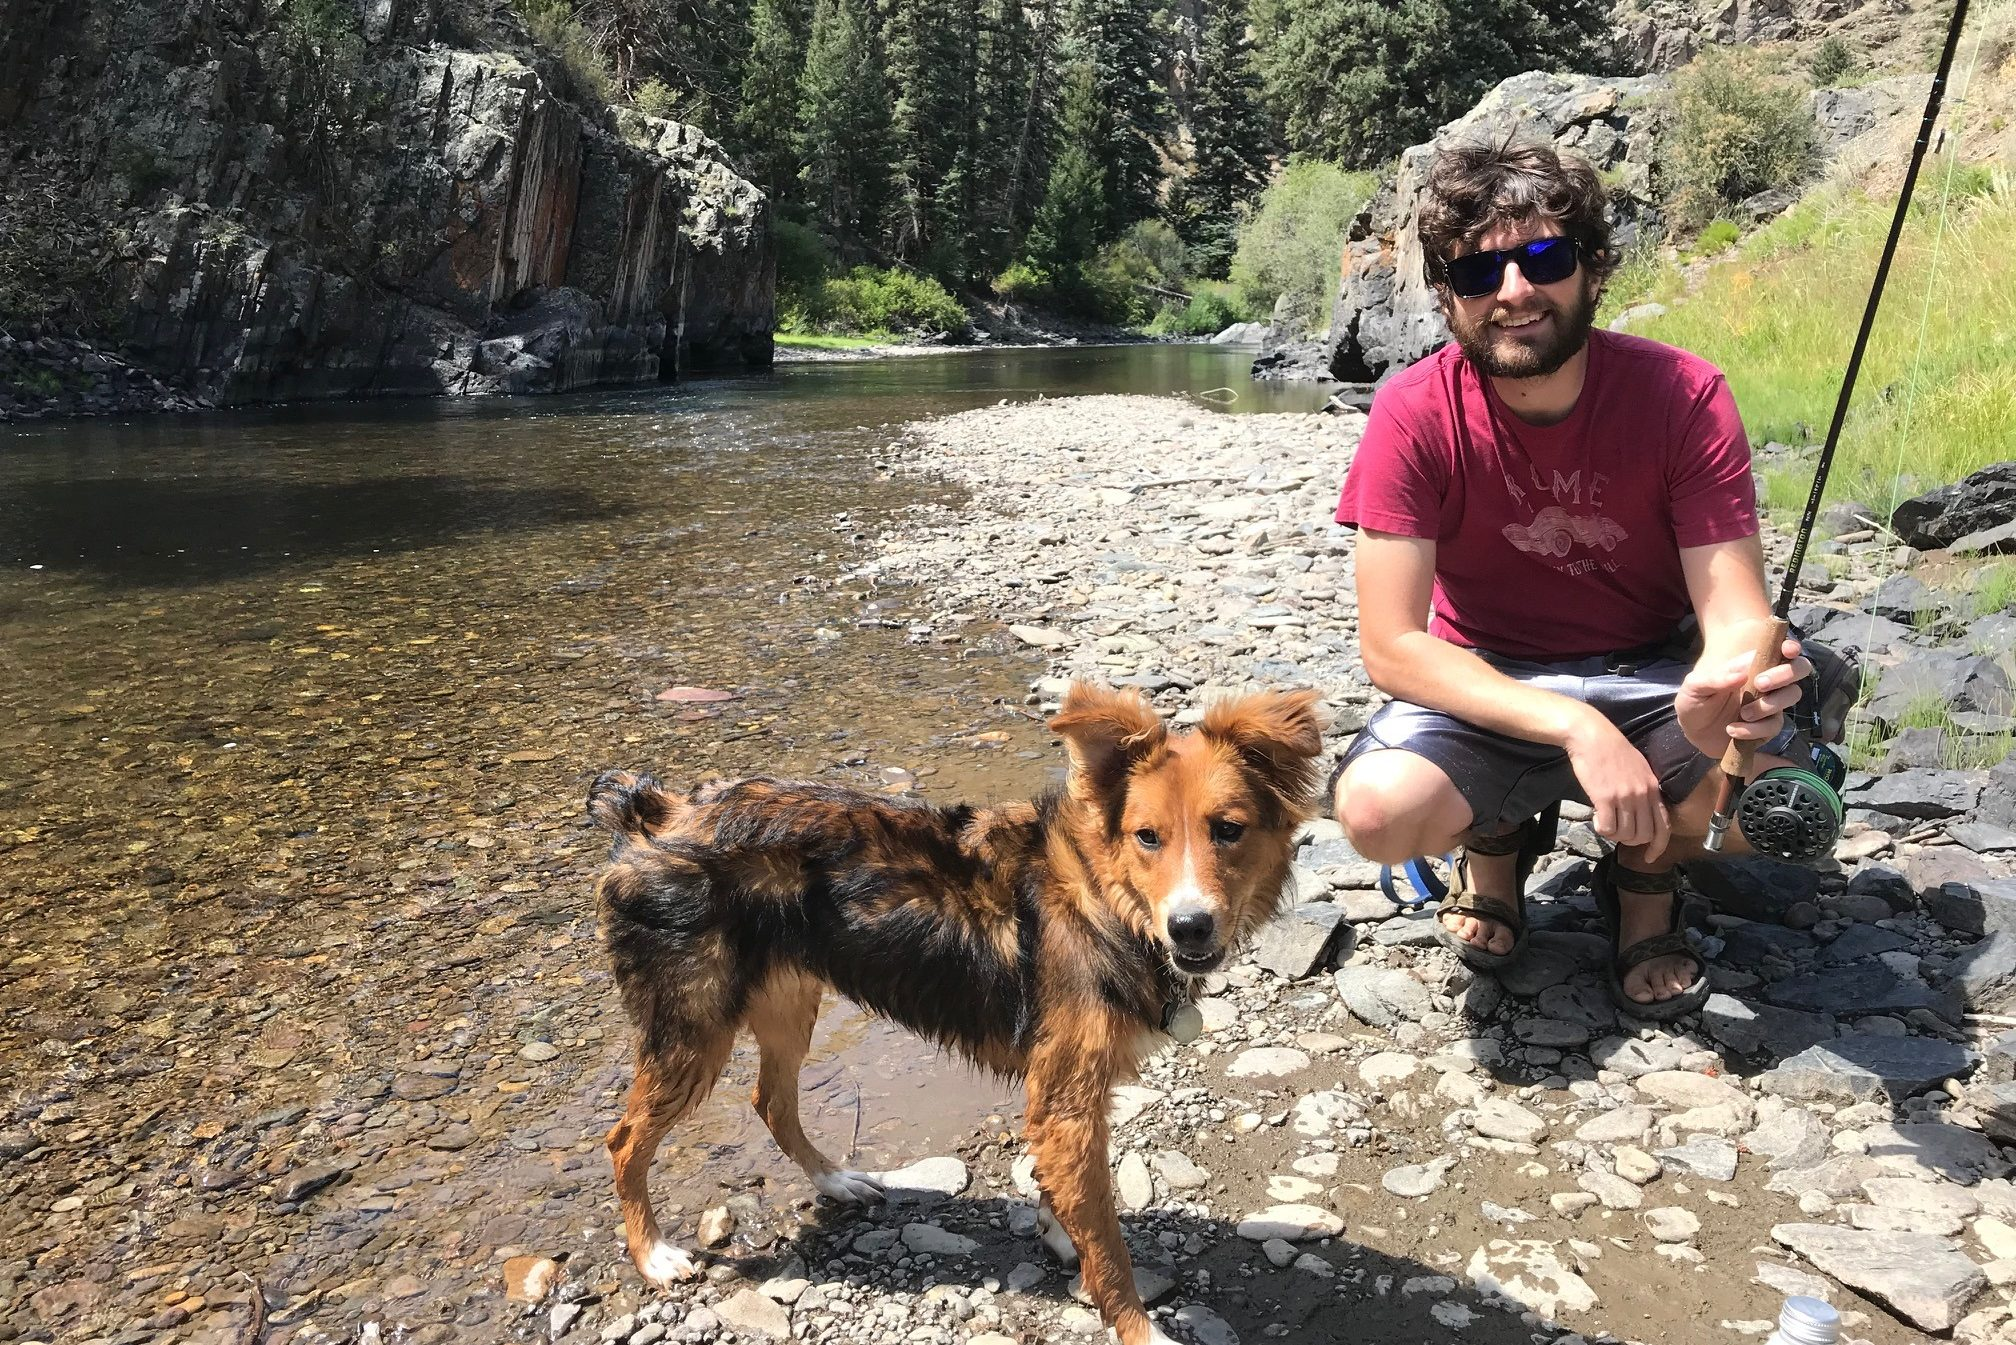 A fly fisherman and his dog pose by the river.